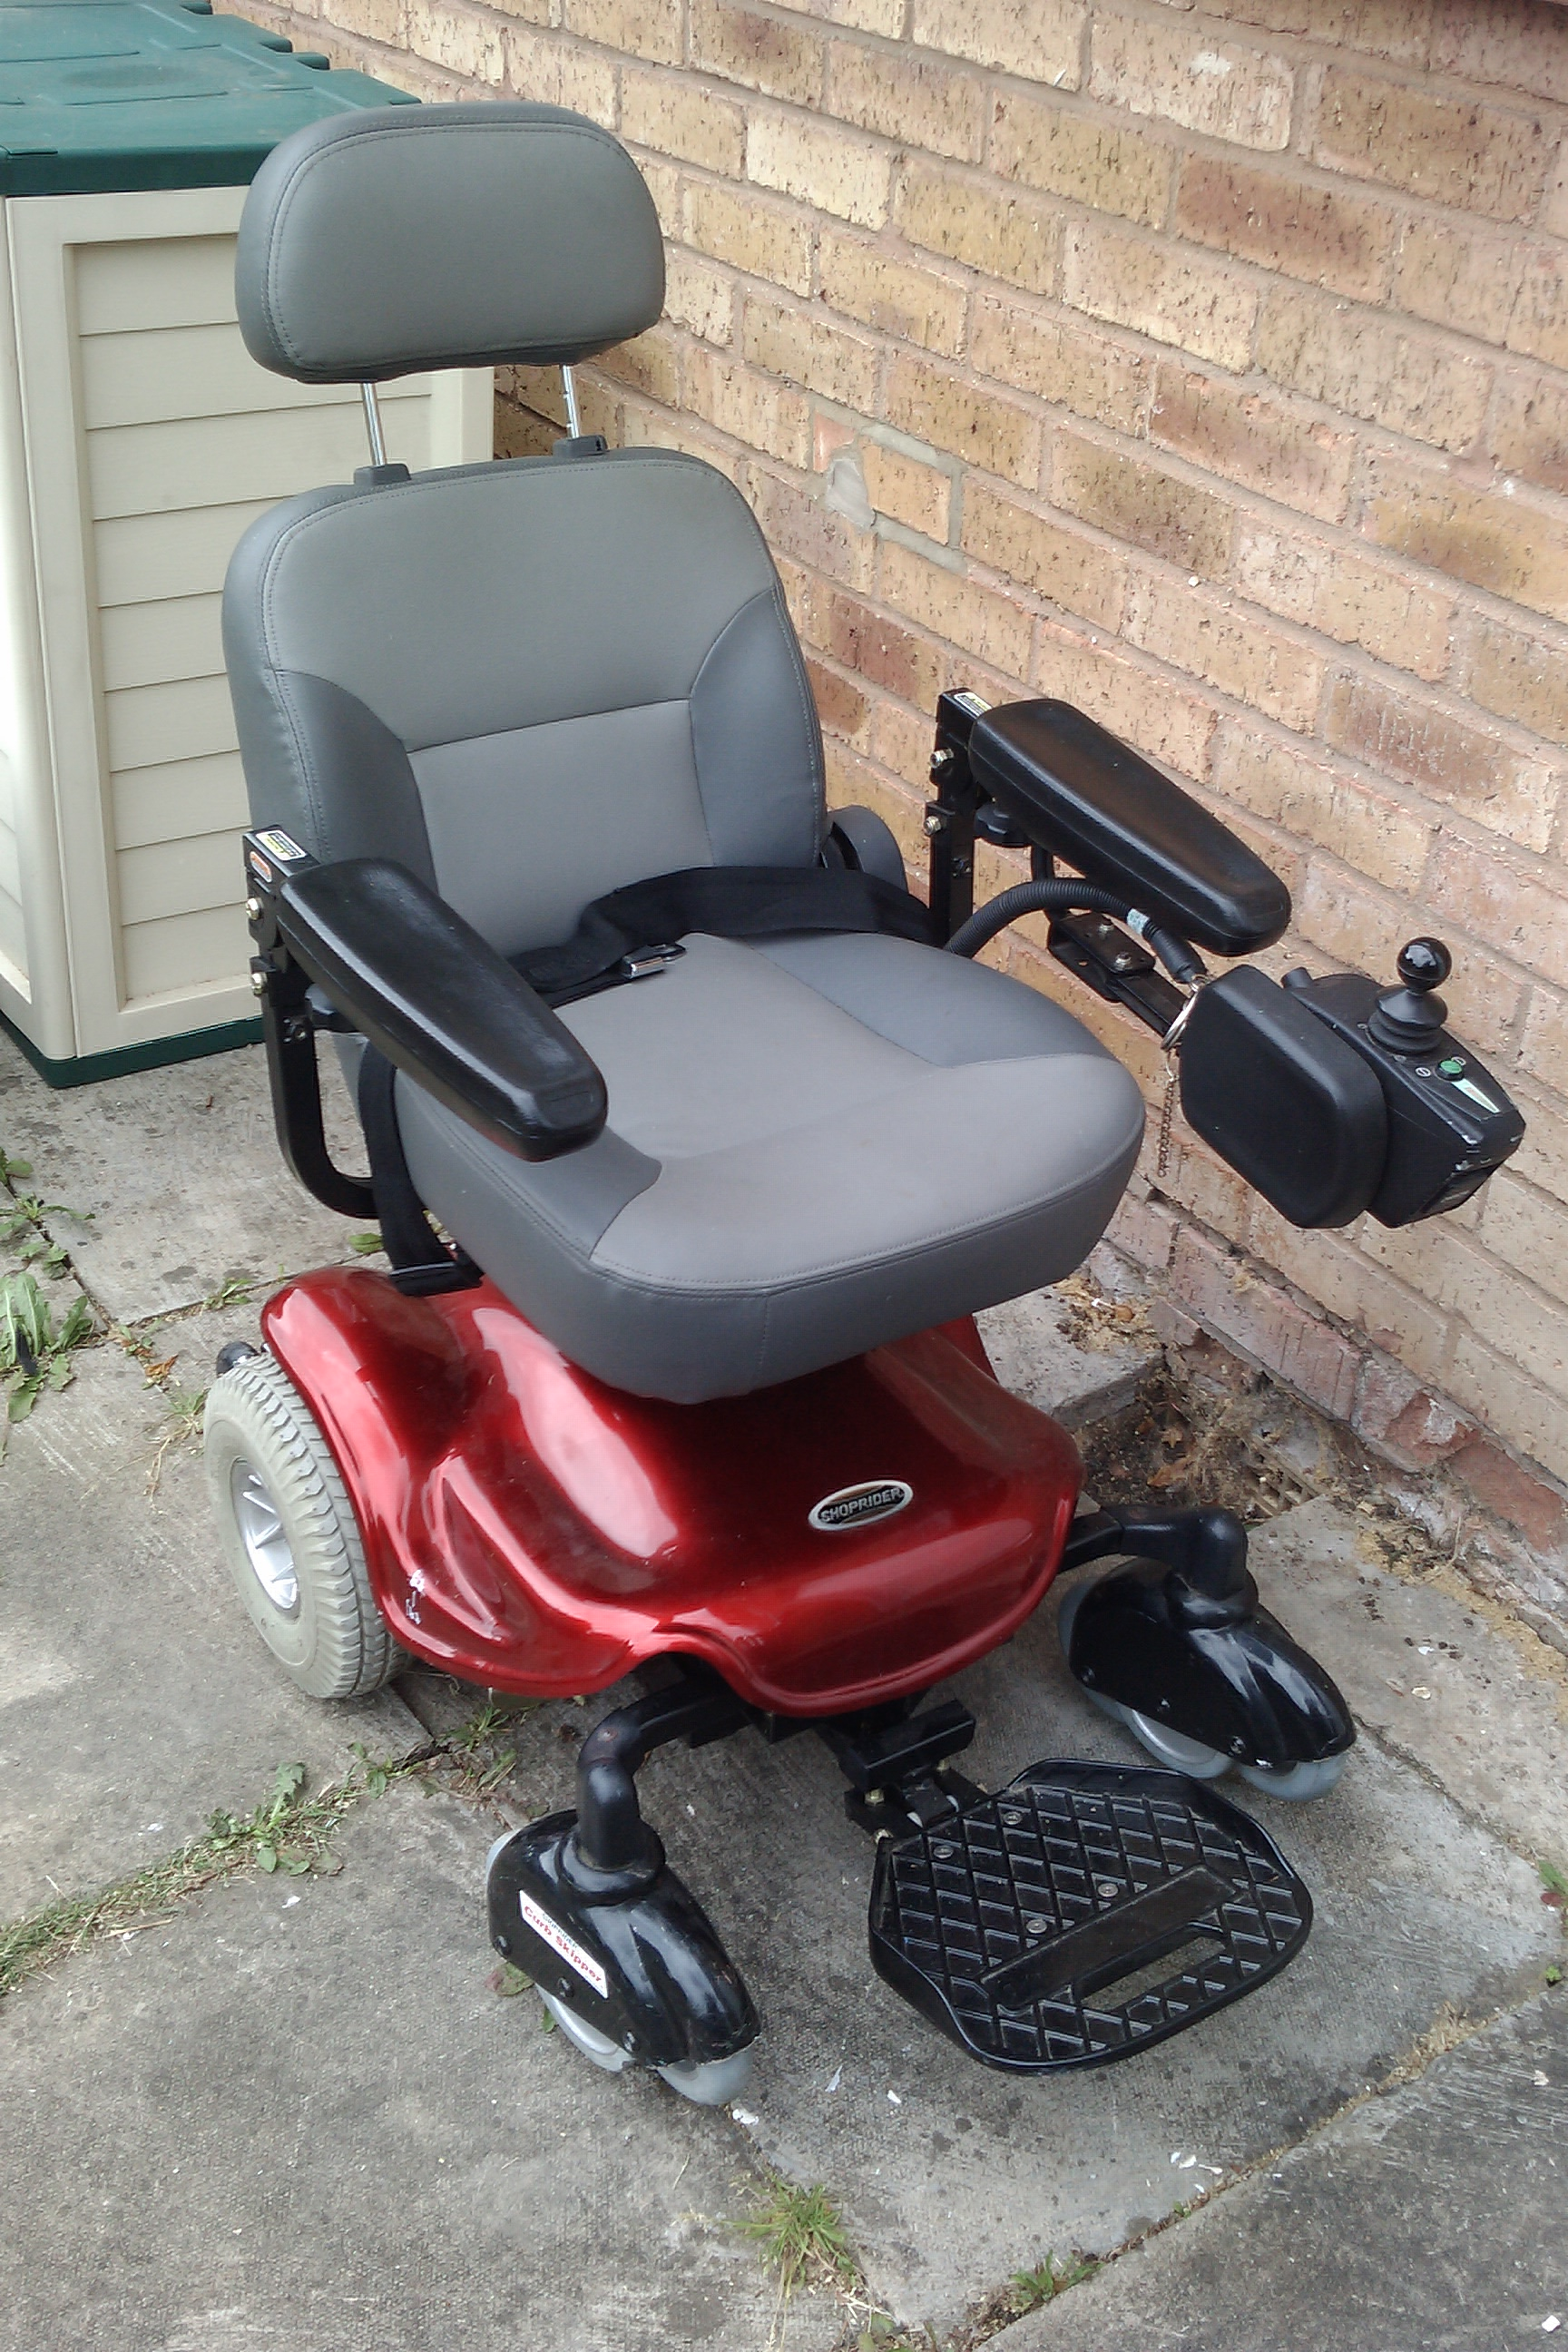 No wheelchair for you – A Latent Existence